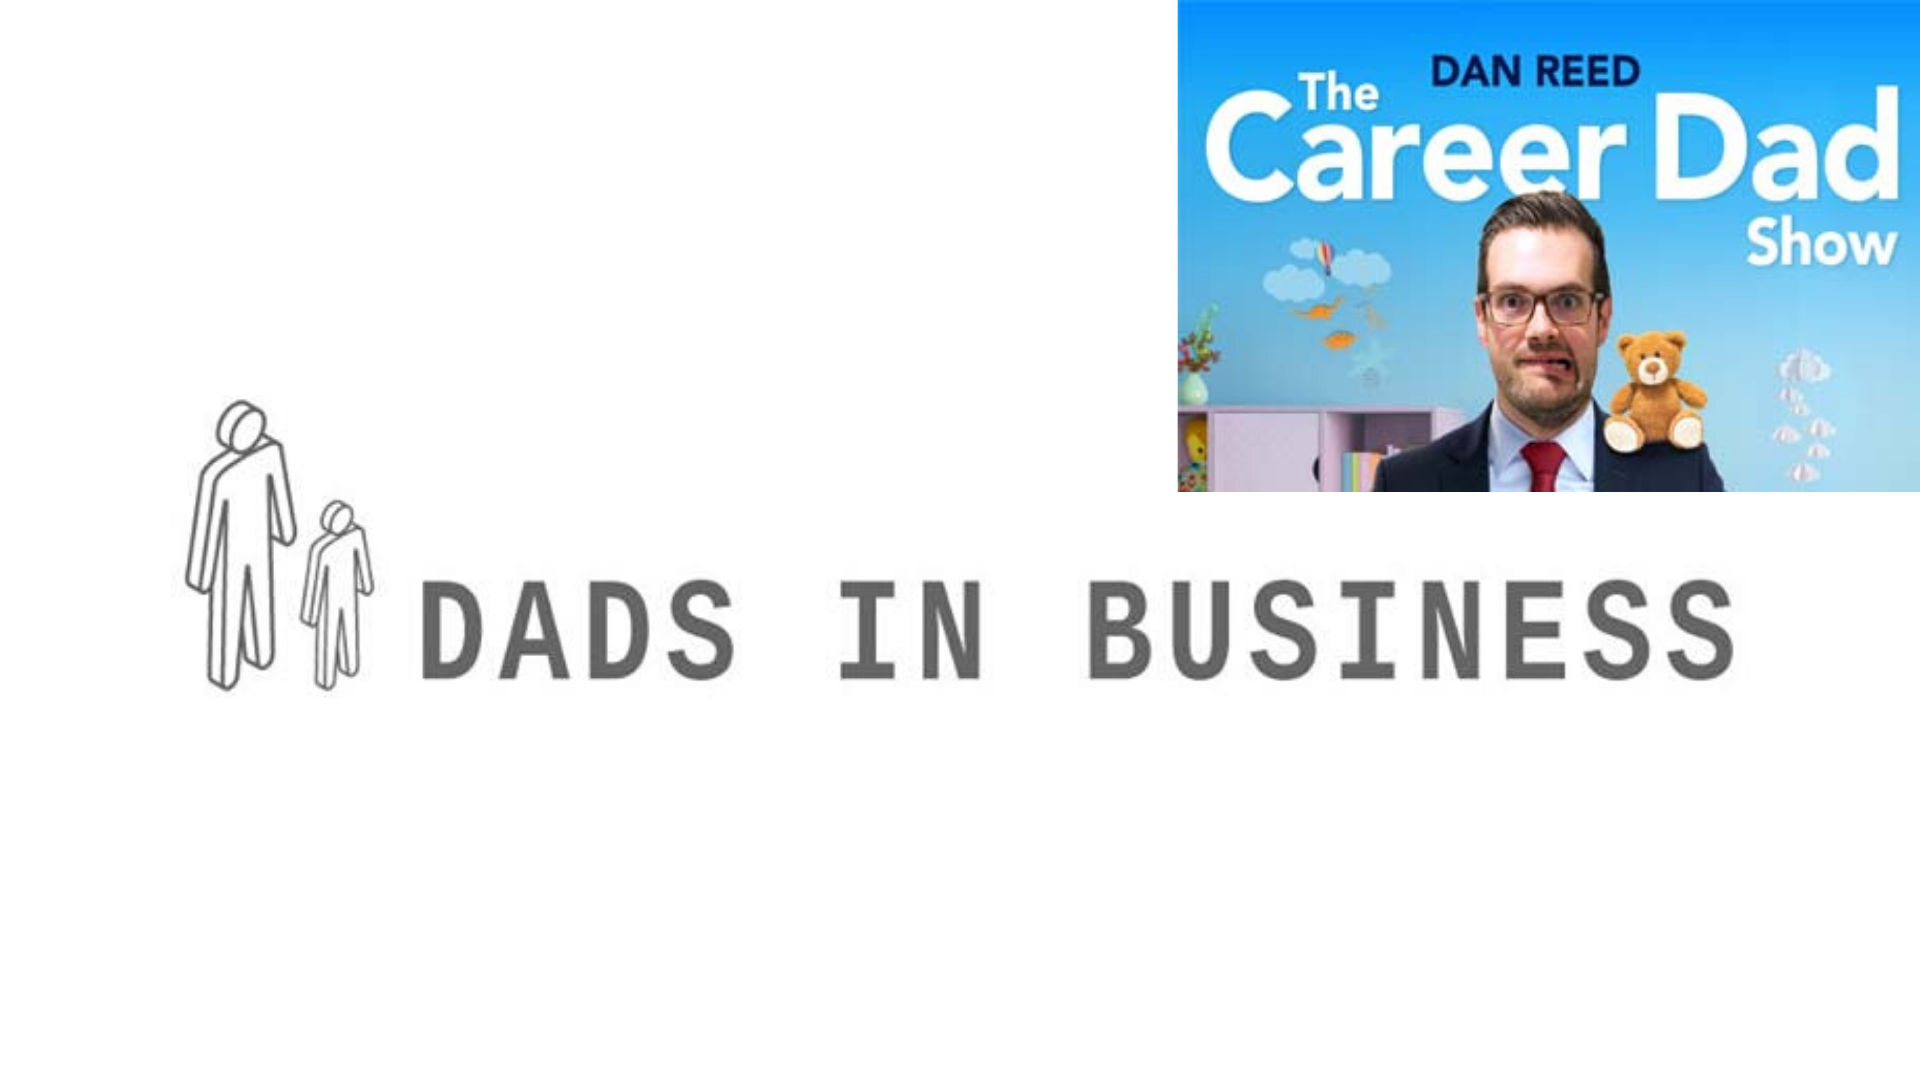 dads in business podcast on career dad show with dan reed